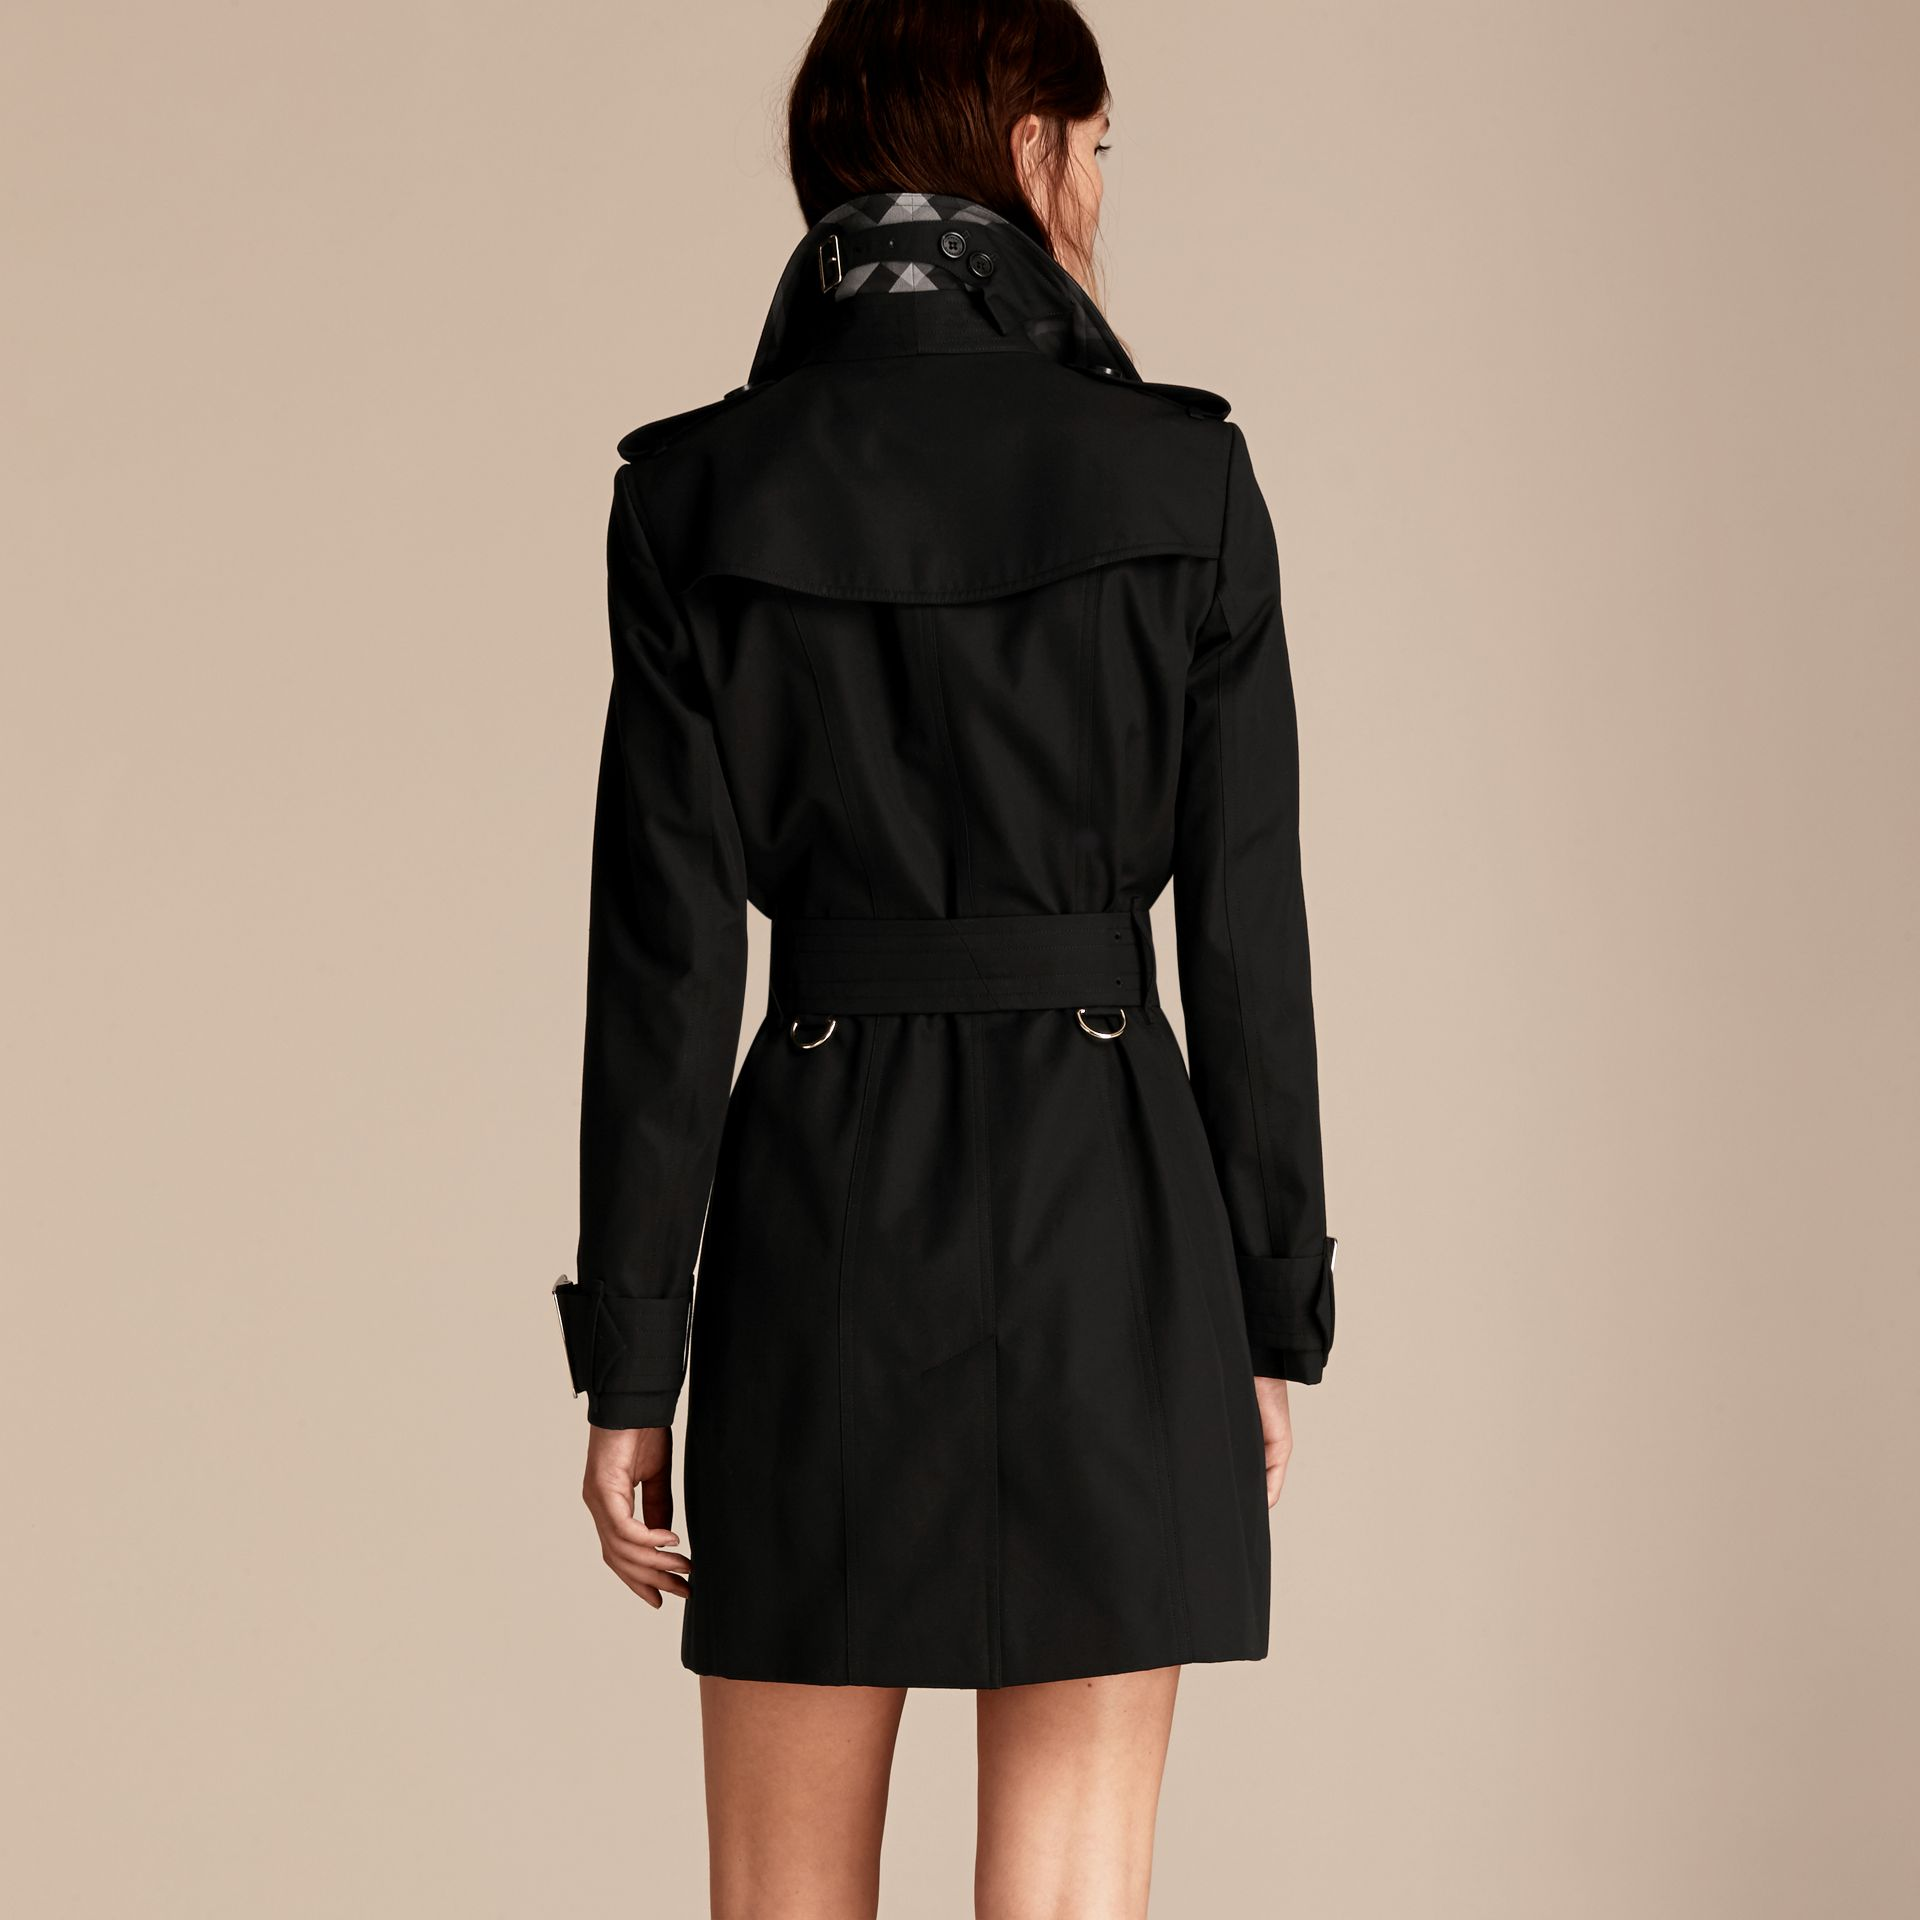 Black Cotton Gabardine Trench Coat with Oversize Buckle Detail Black - gallery image 3